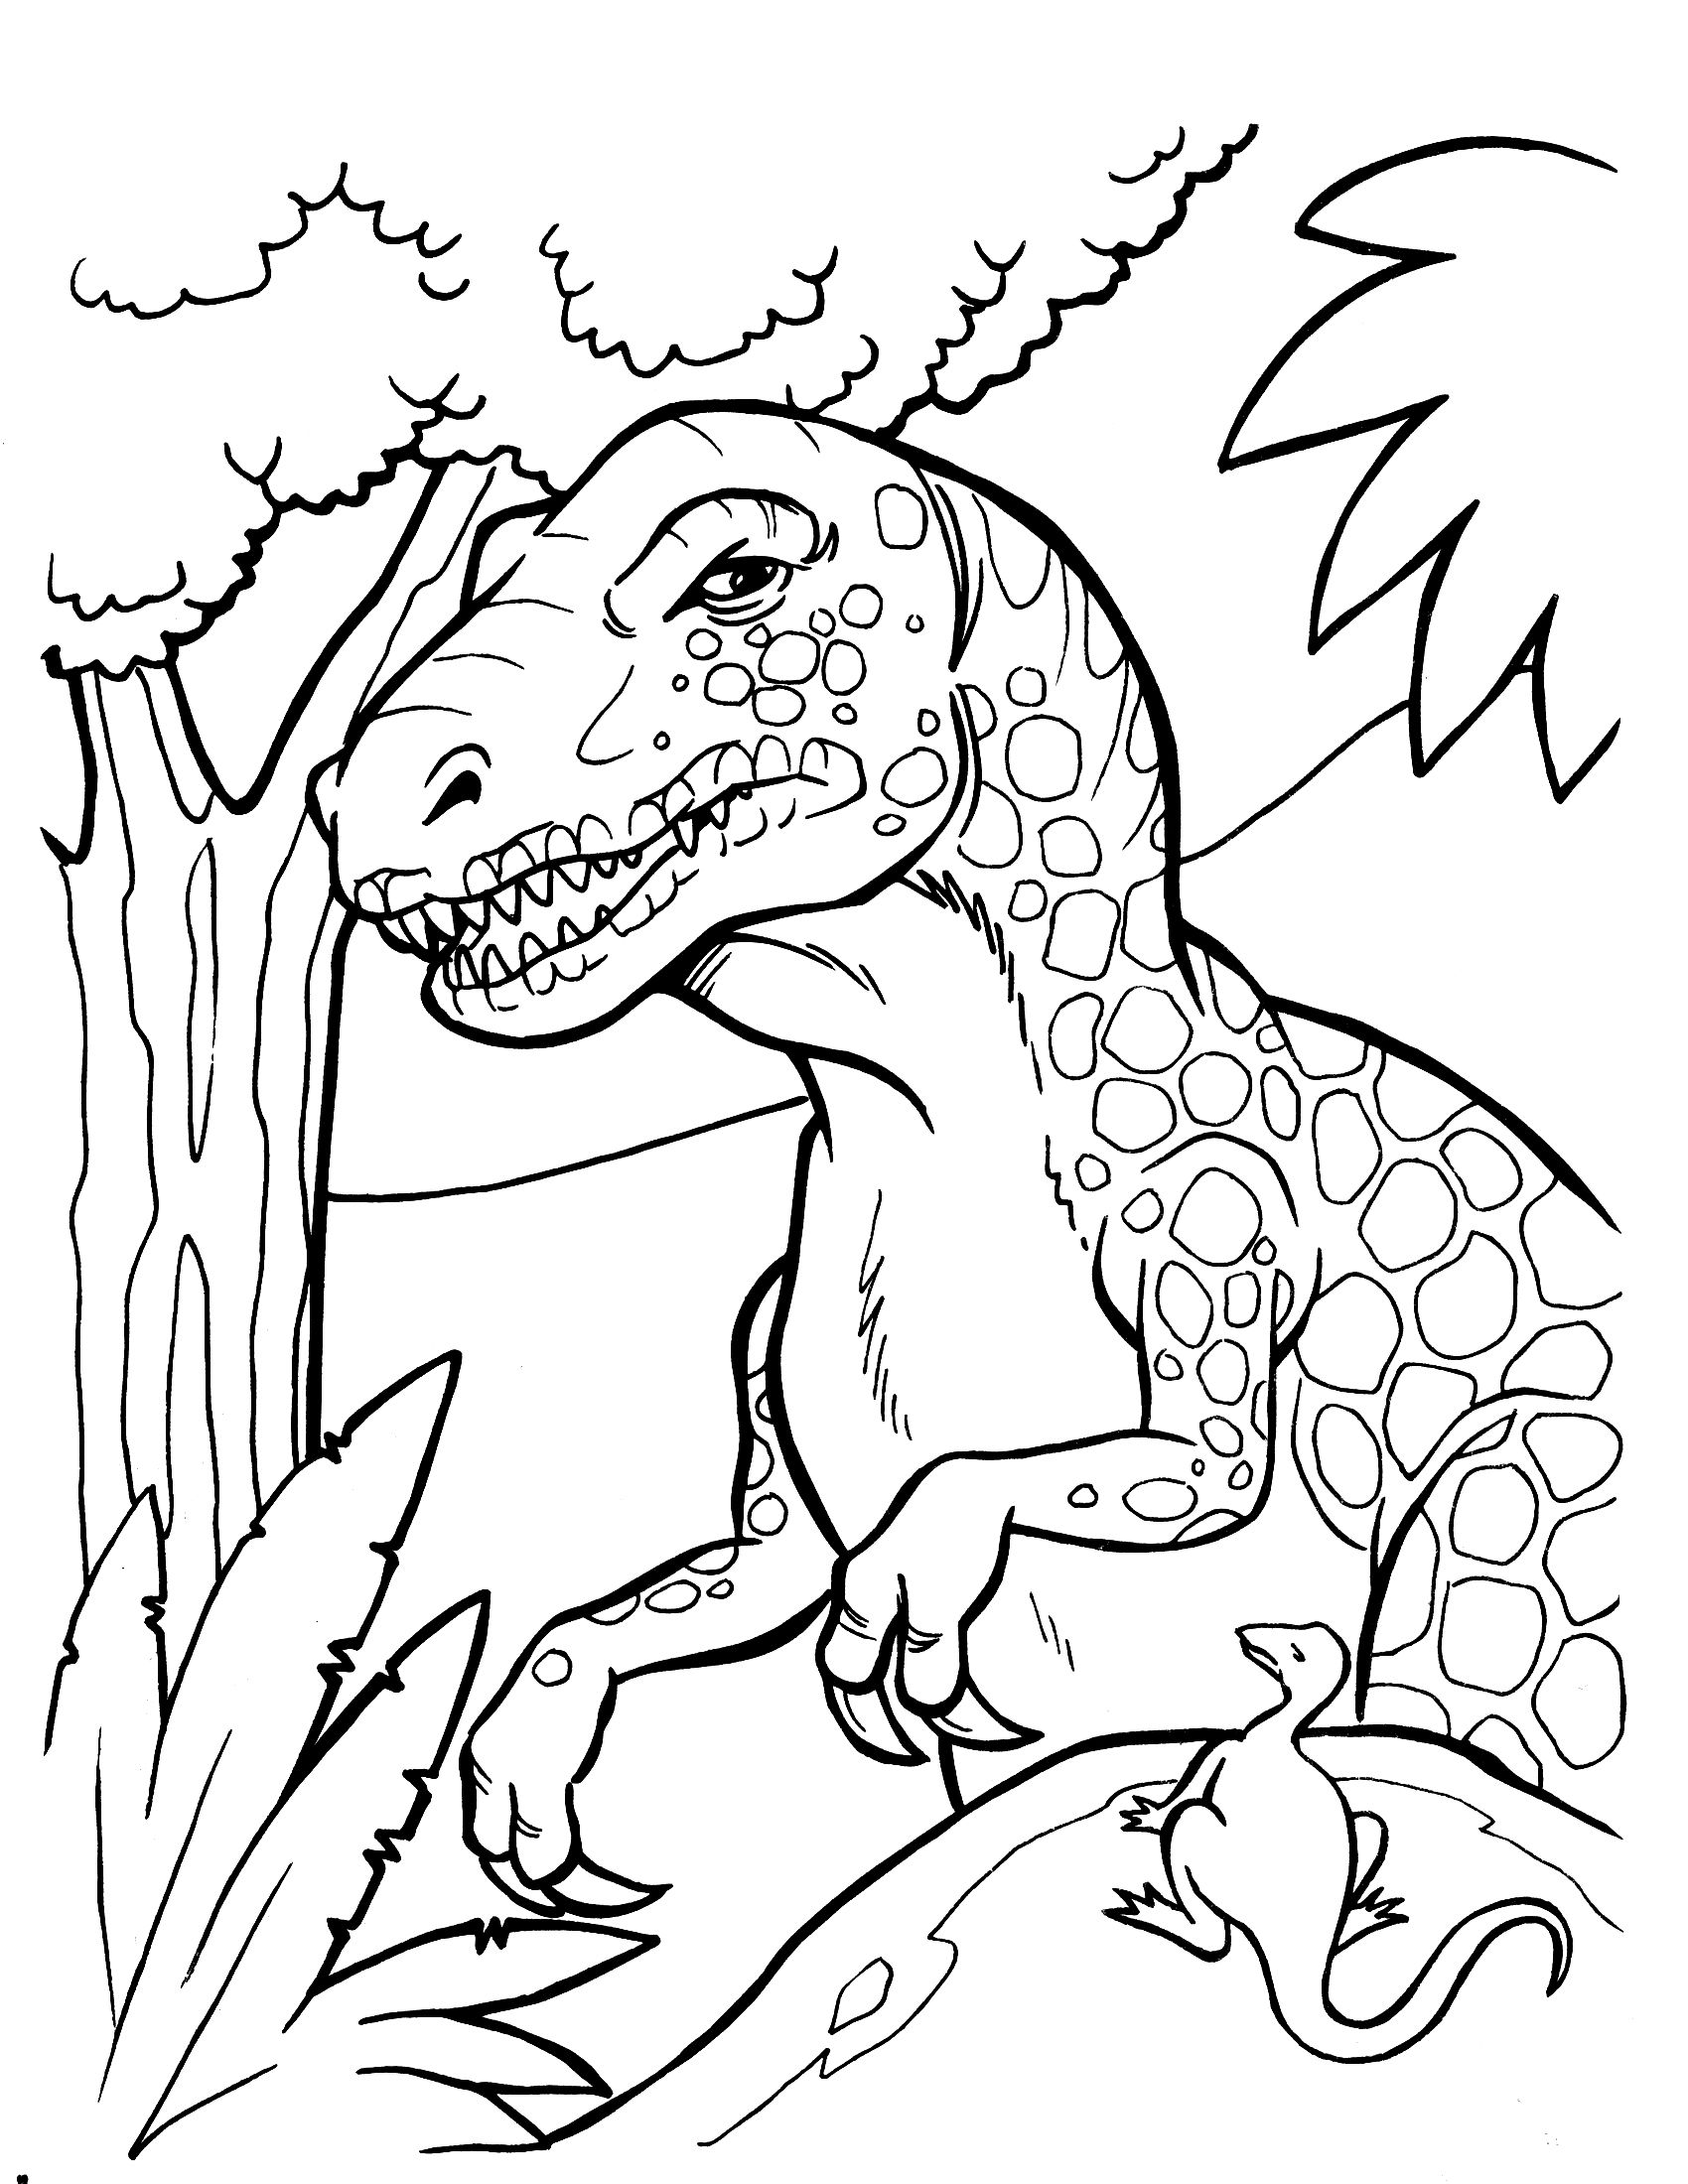 free printable dinosaur coloring pages - Coloring Pages Of Dinosaurs